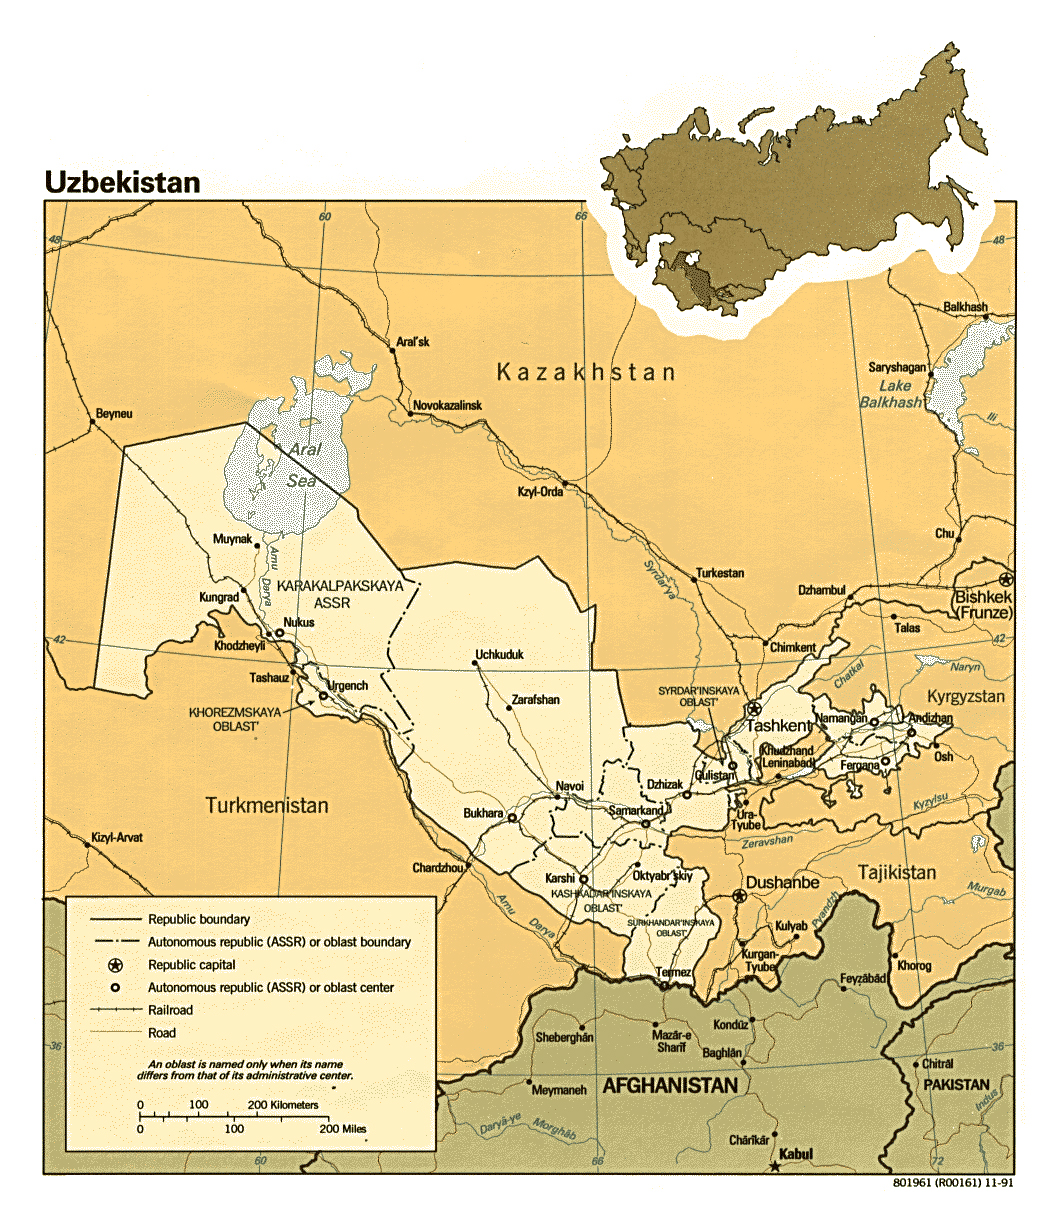 Maps of uzbekistan detailed map of uzbekistan in english detailed political and administratie map of uzbekistan 1991 gumiabroncs Images